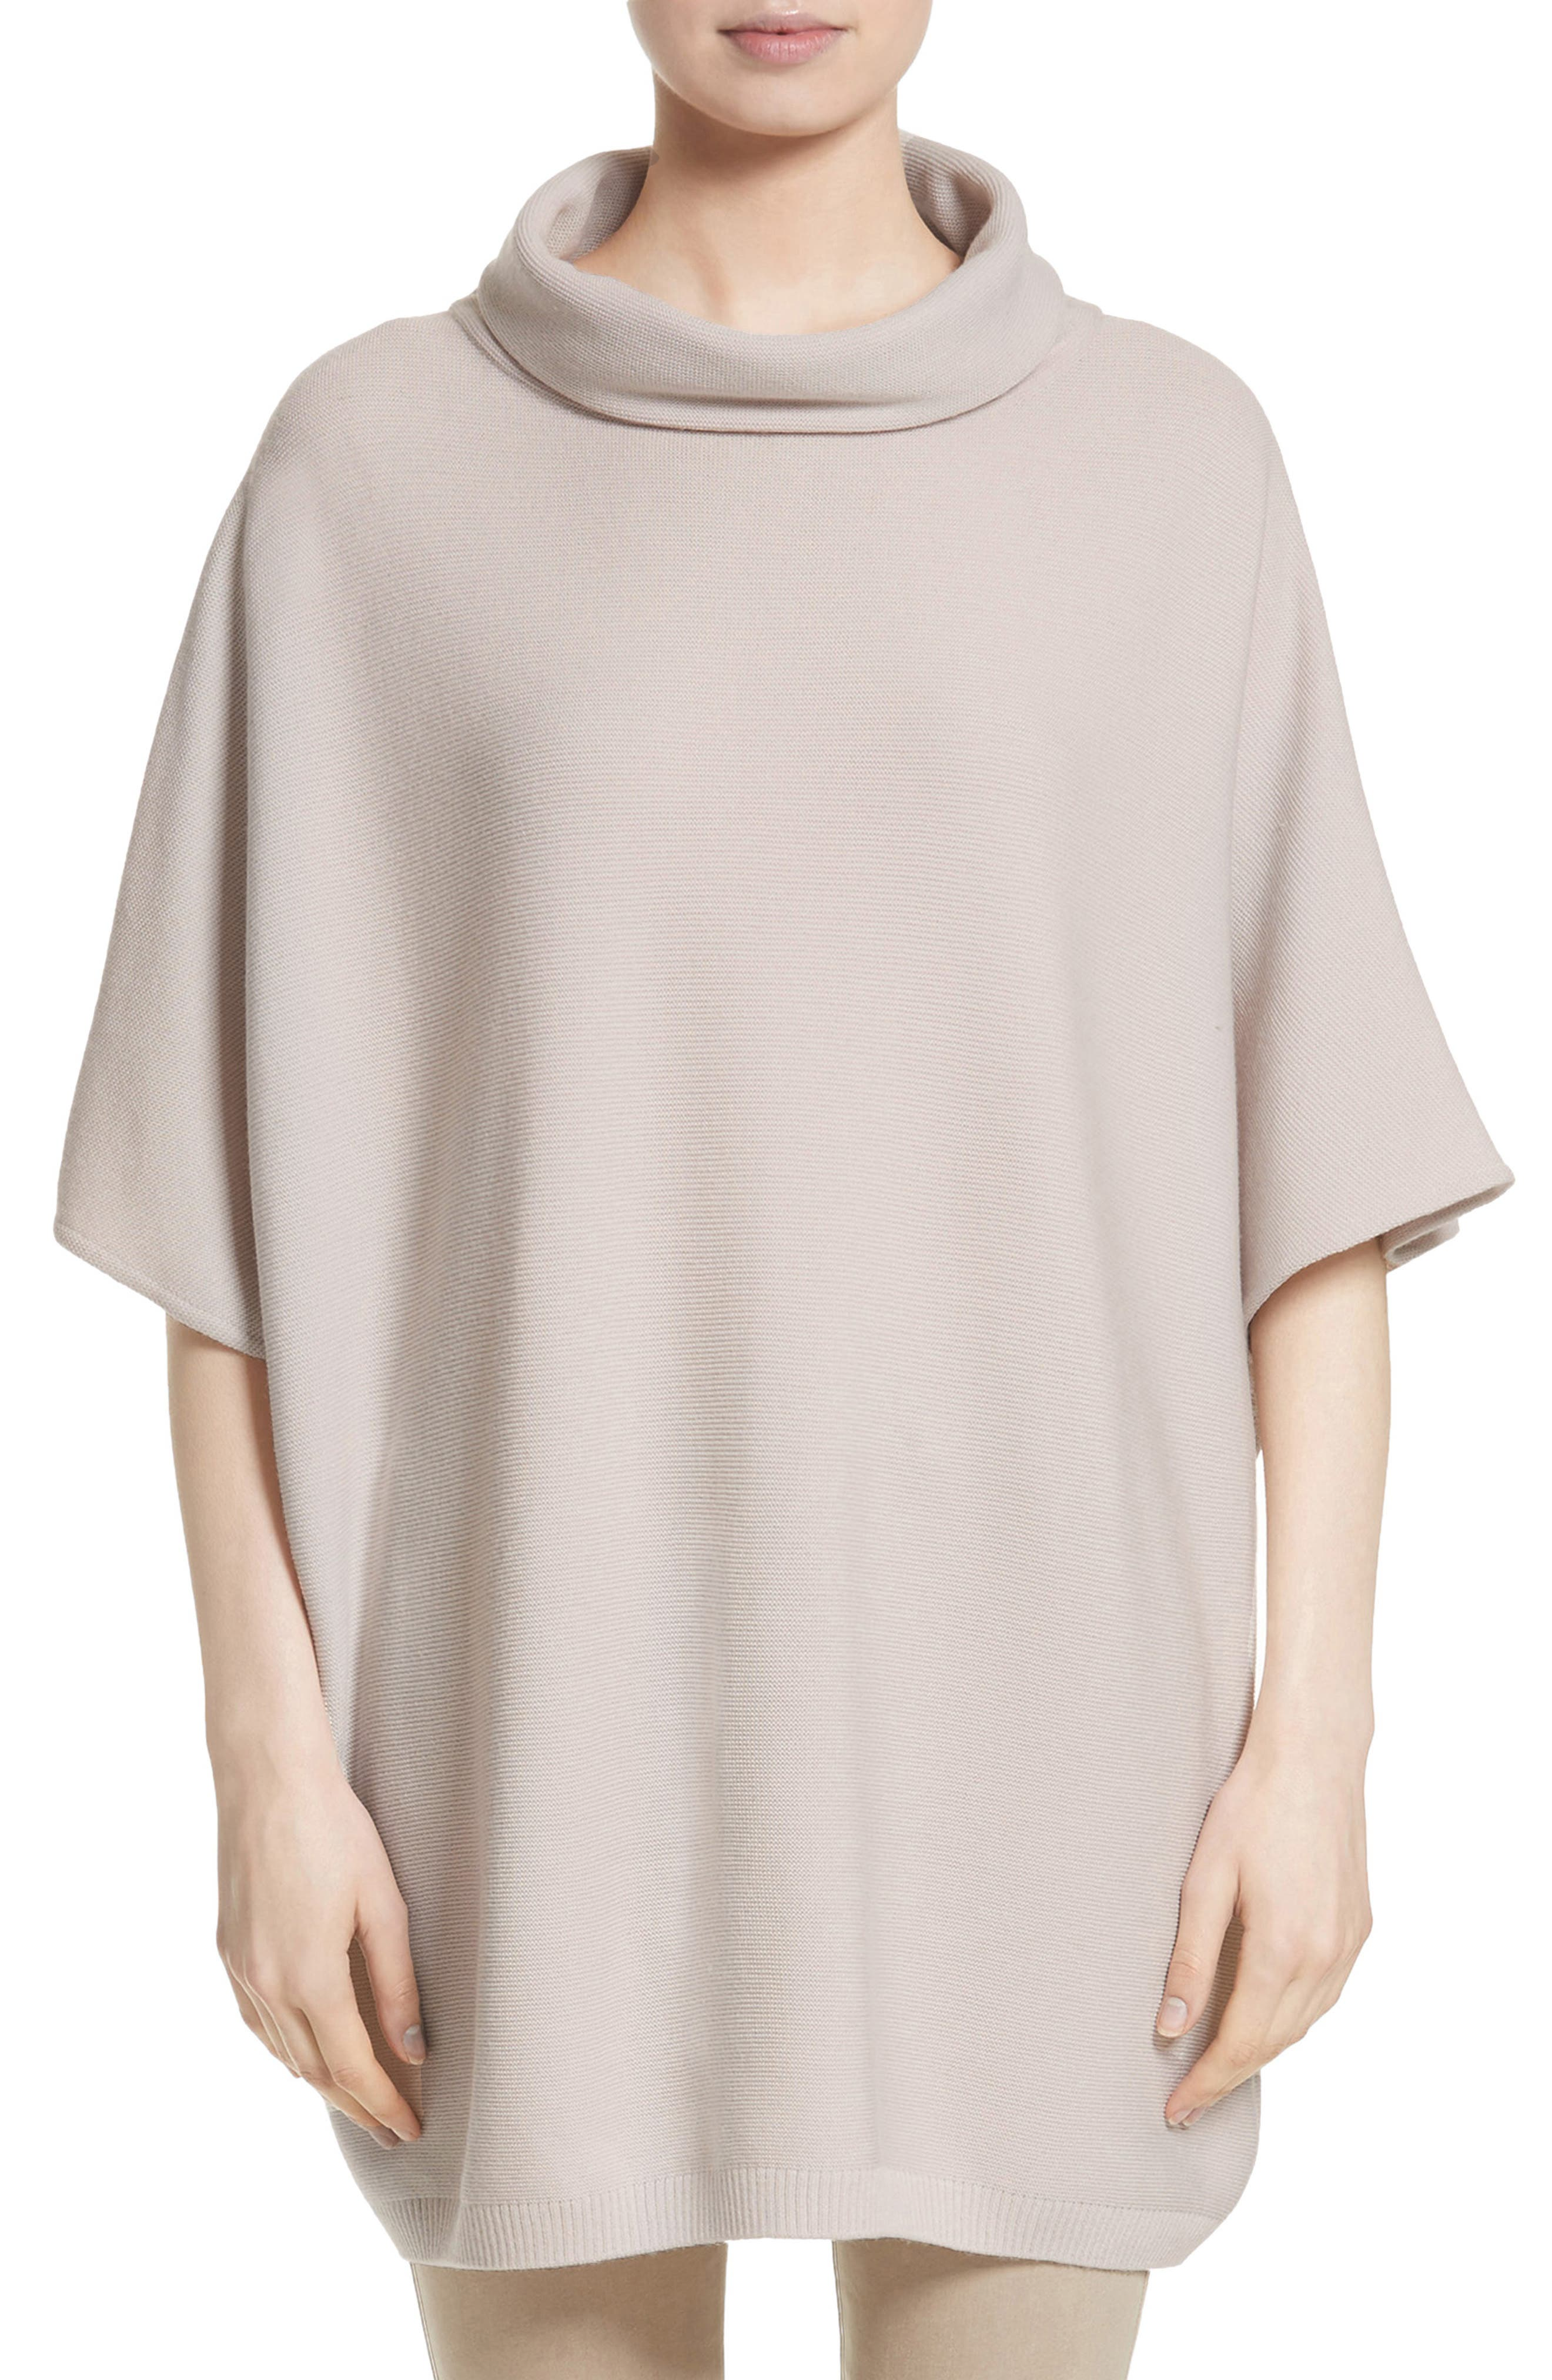 St. John Collection Links Knit Wool Cocoon Tunic Sweater (Nordstrom Exclusive)